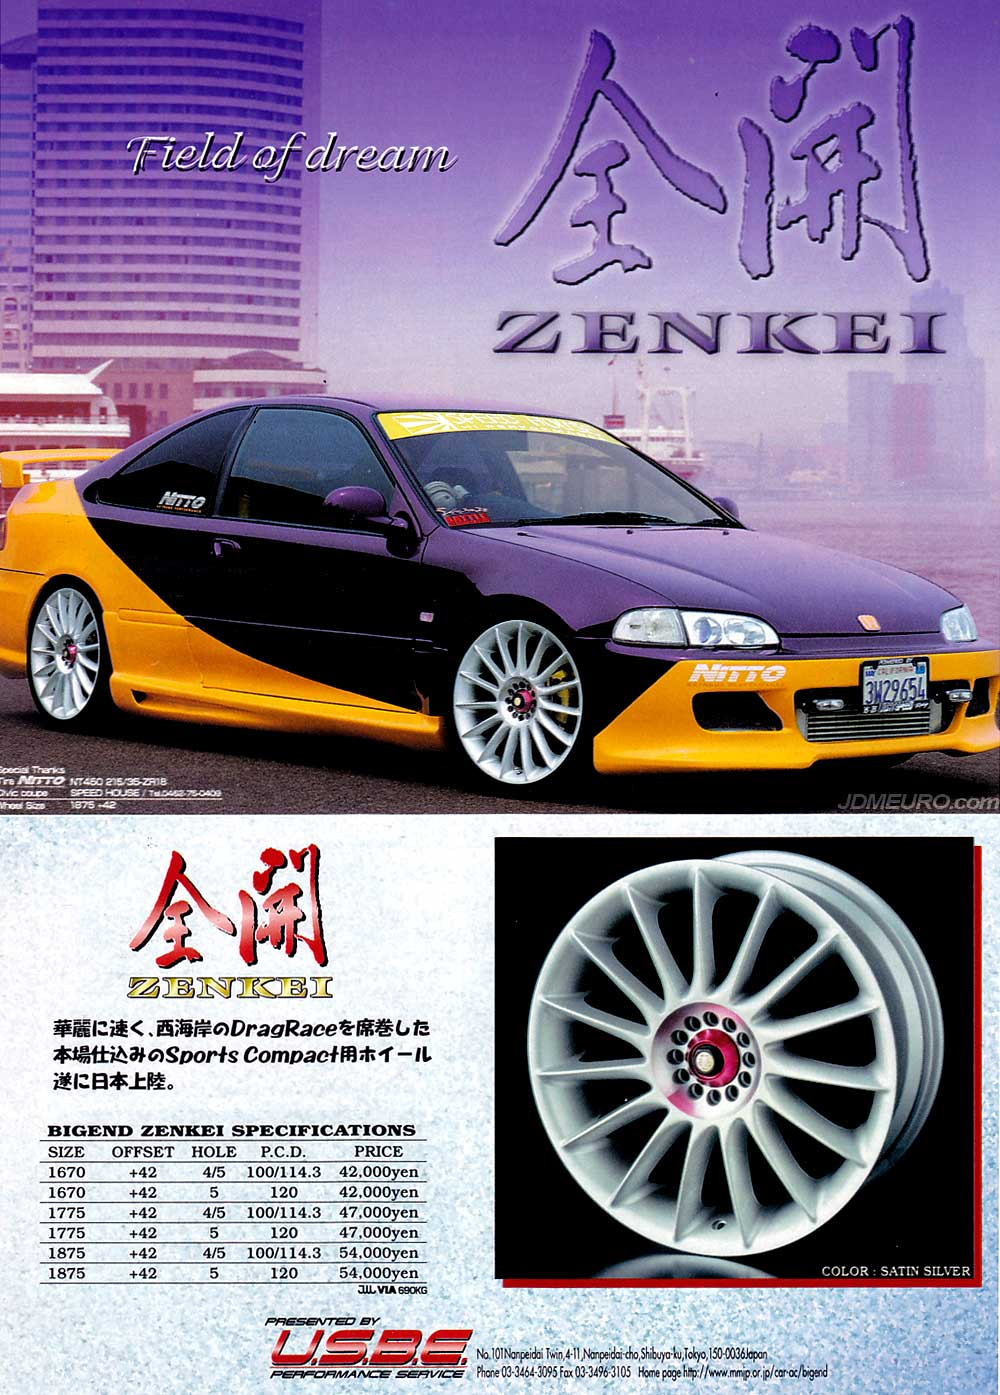 Enkei Zenkei by Big End - JDM Wheels